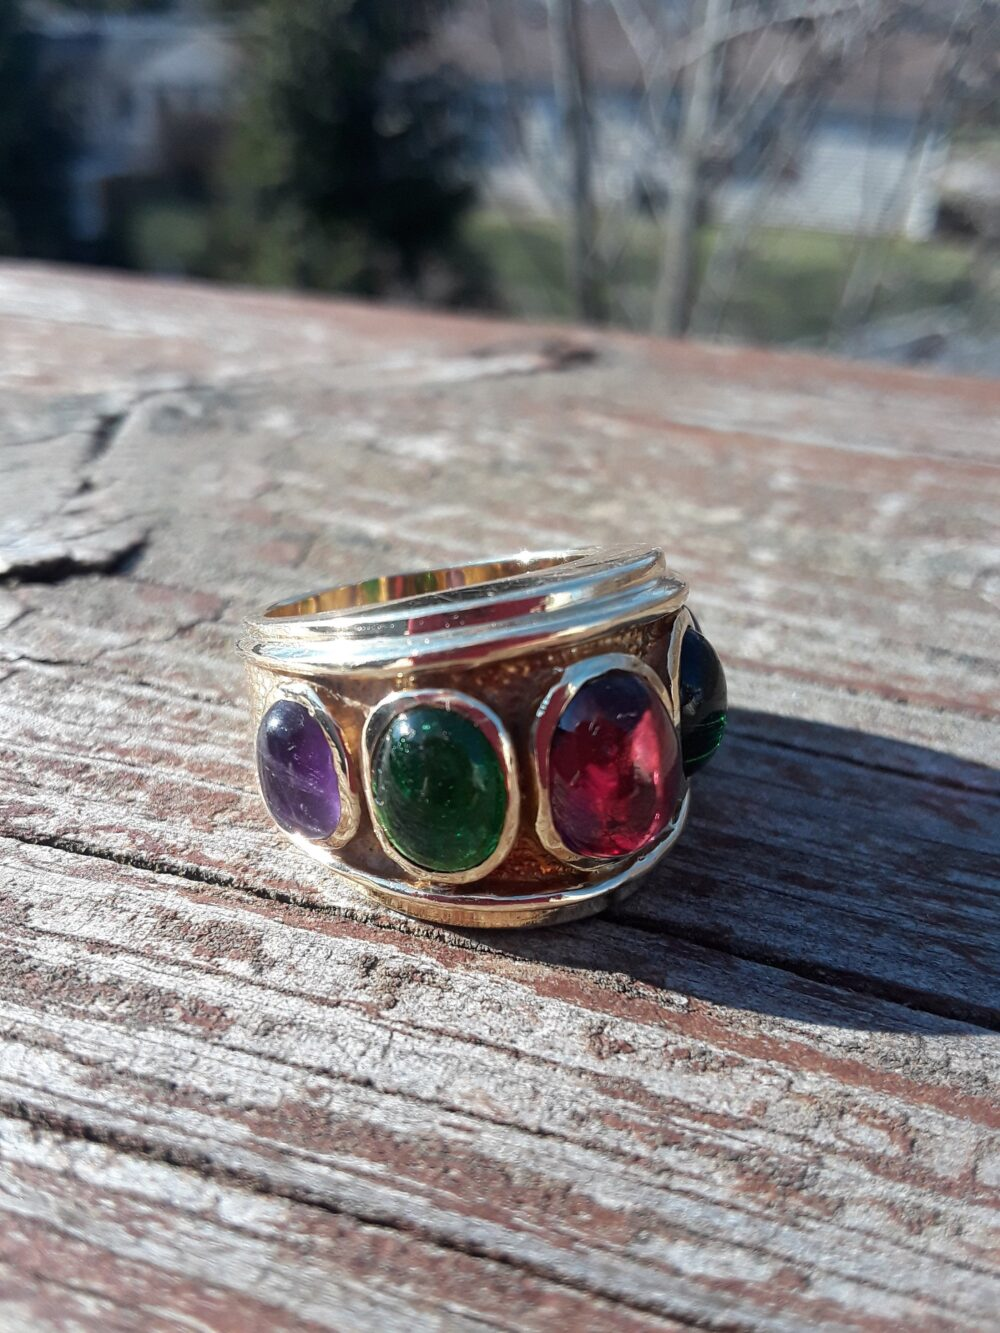 14K Gold Natural Gemstones Ruby Emerald Amethyst Cabochons Wedding Engagement Cocktail Ring Band Italian 13.7 Grams